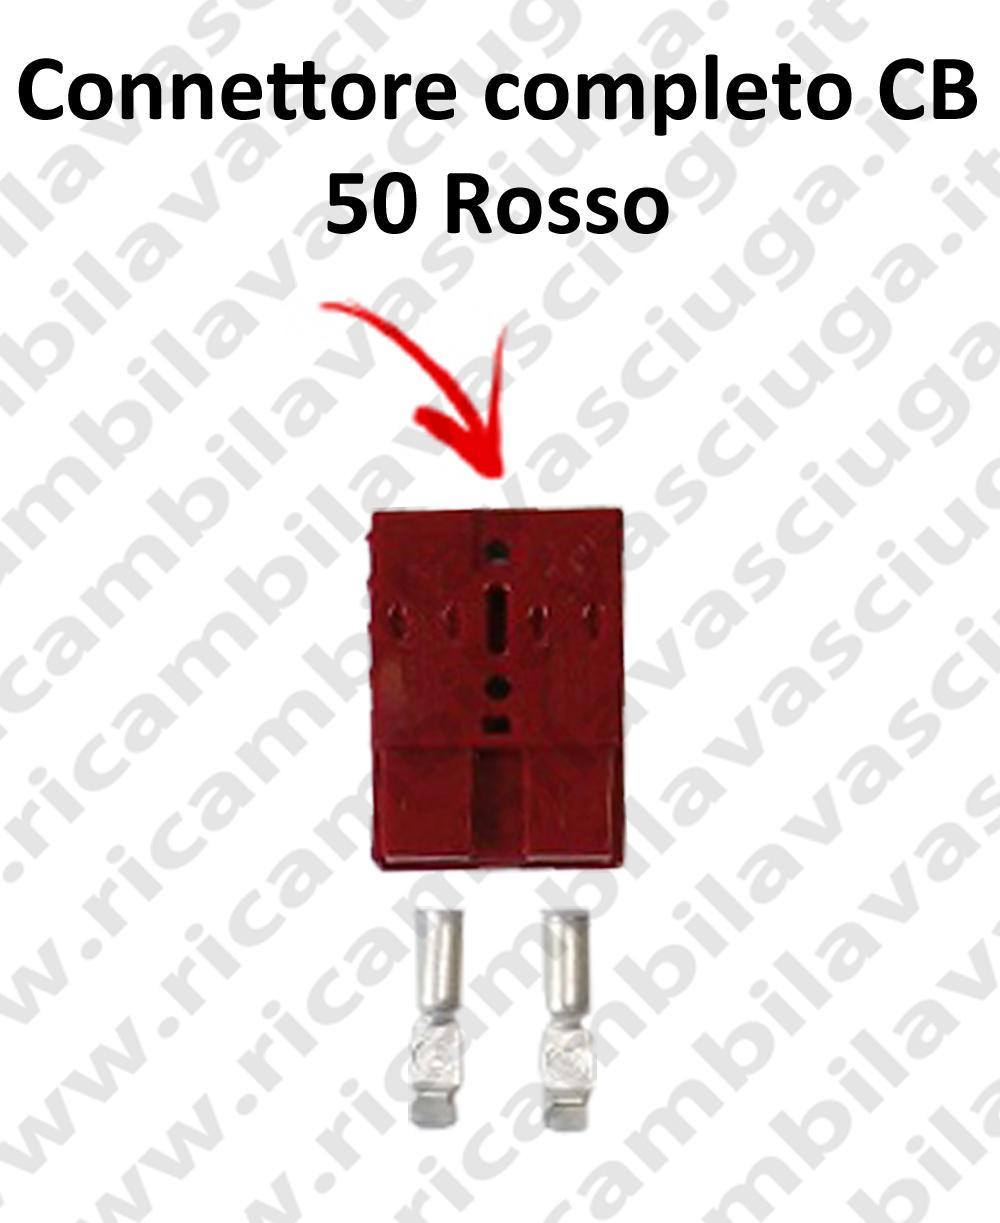 Complete connector CB 50 Red for battery and battery charger